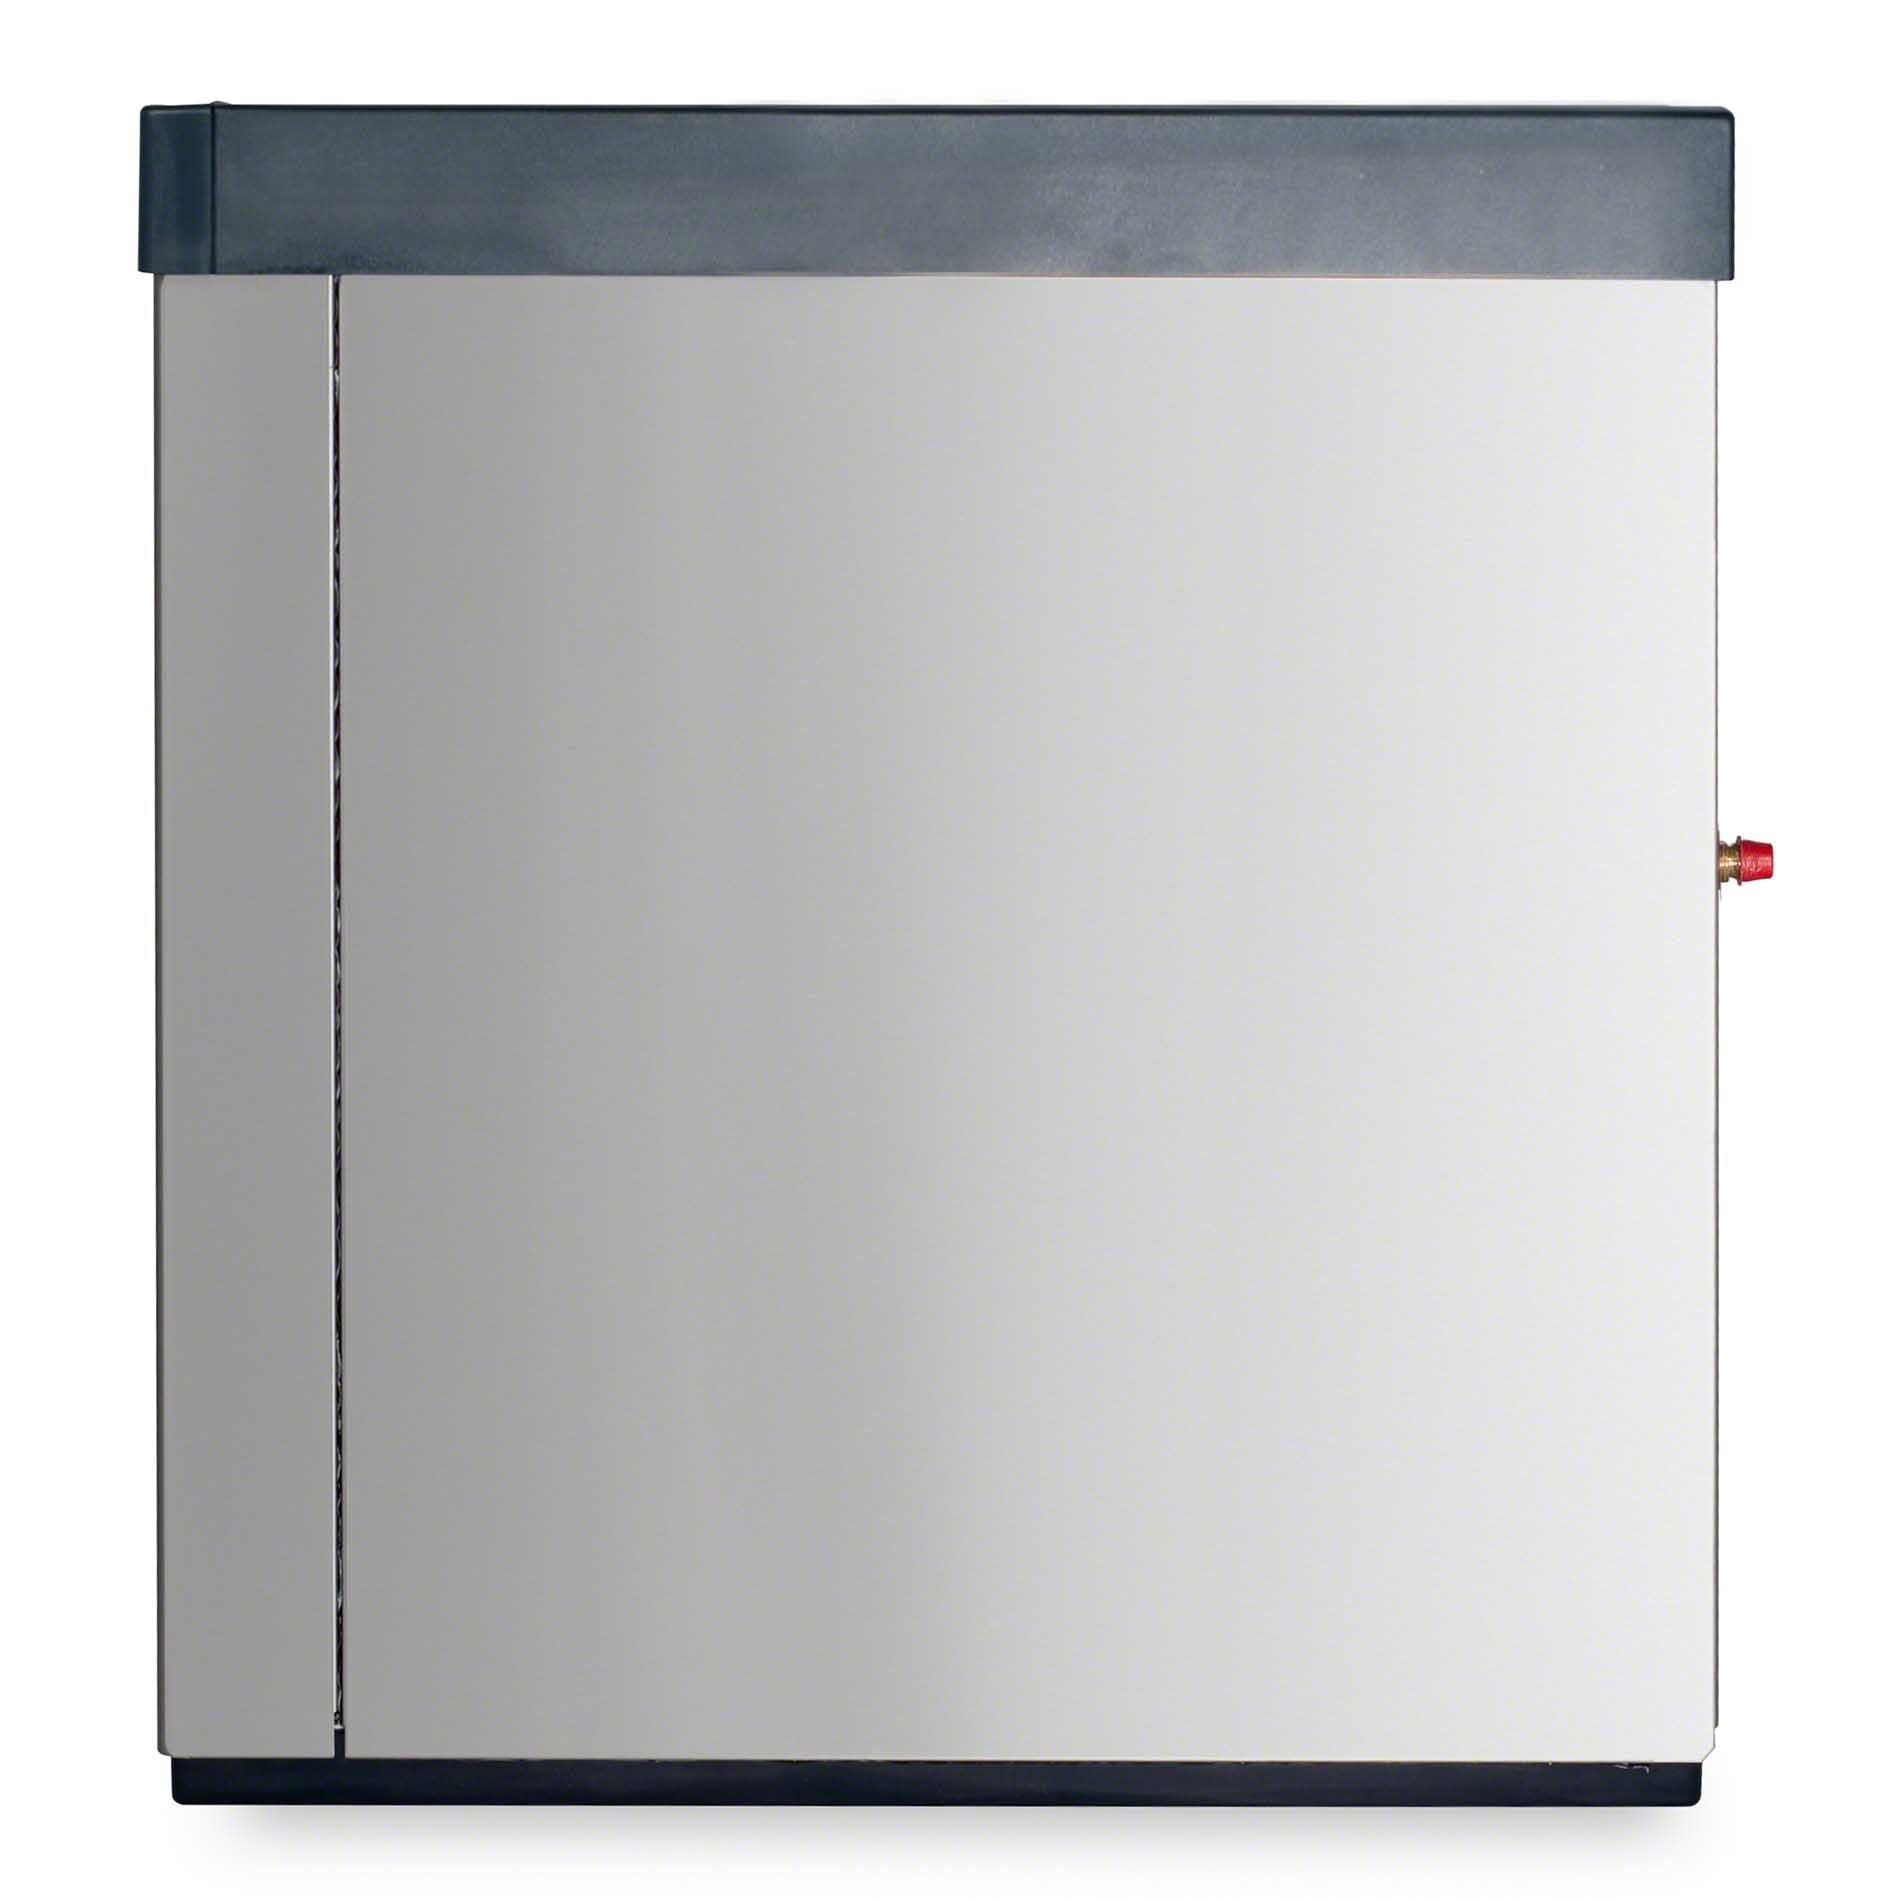 Scotsman - F1222R-32A 1250 lb Flake Ice Machine - Prodigy Series - sold by Food Service Warehouse